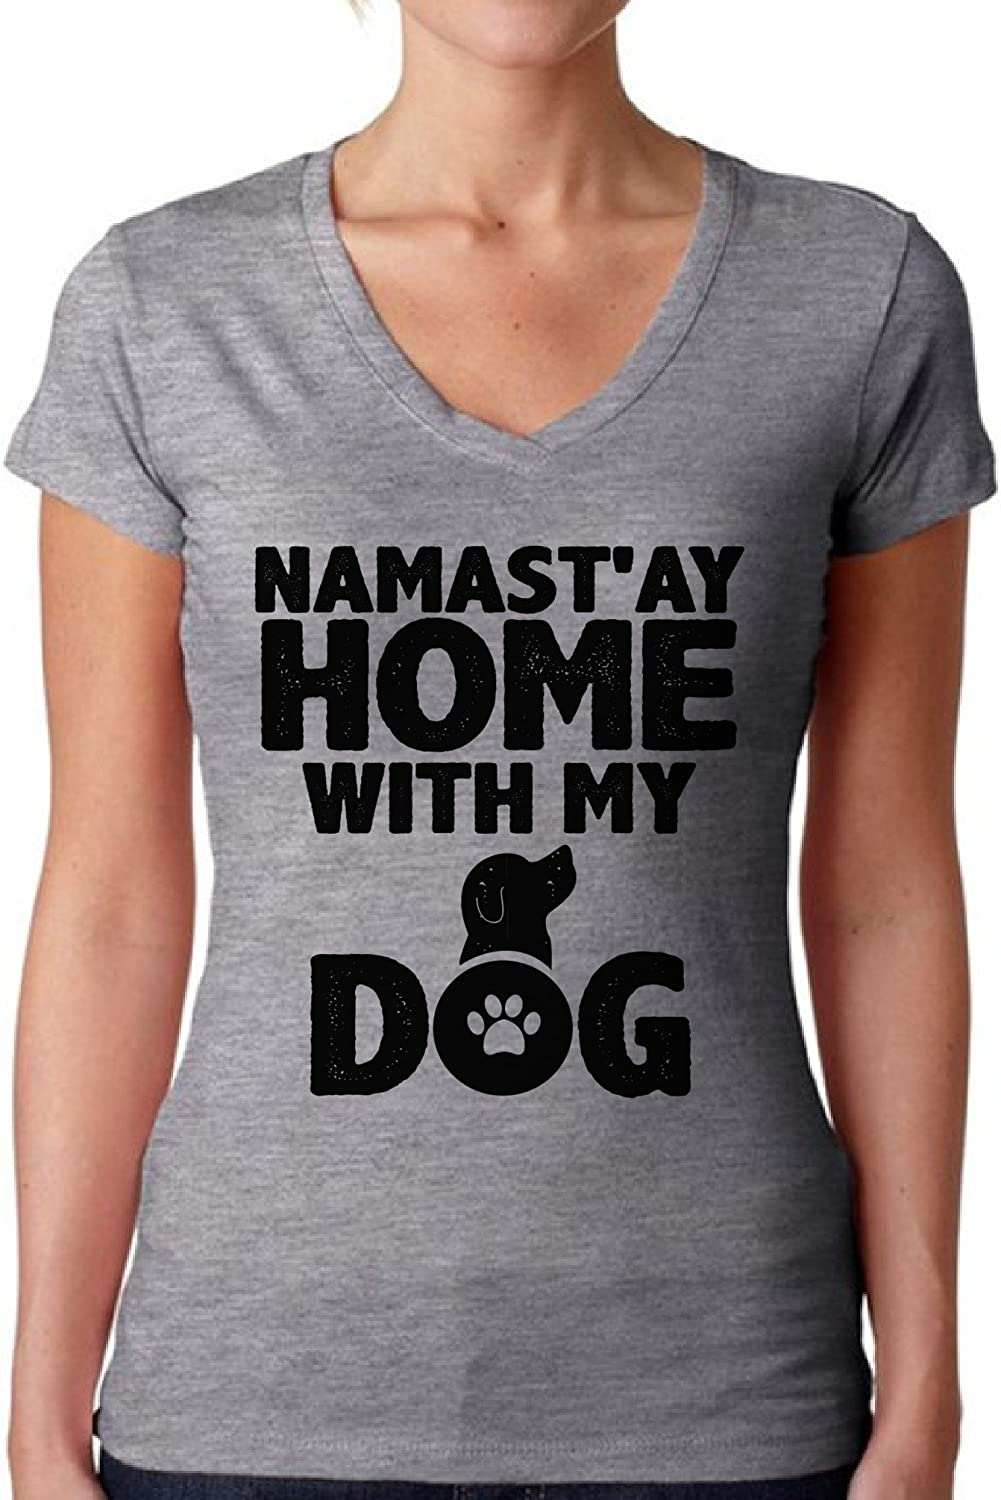 Awkward Styles Women's Namast`ay Home with My Dog Pet Lover`s Graphic V-Neck T Shirt Tops